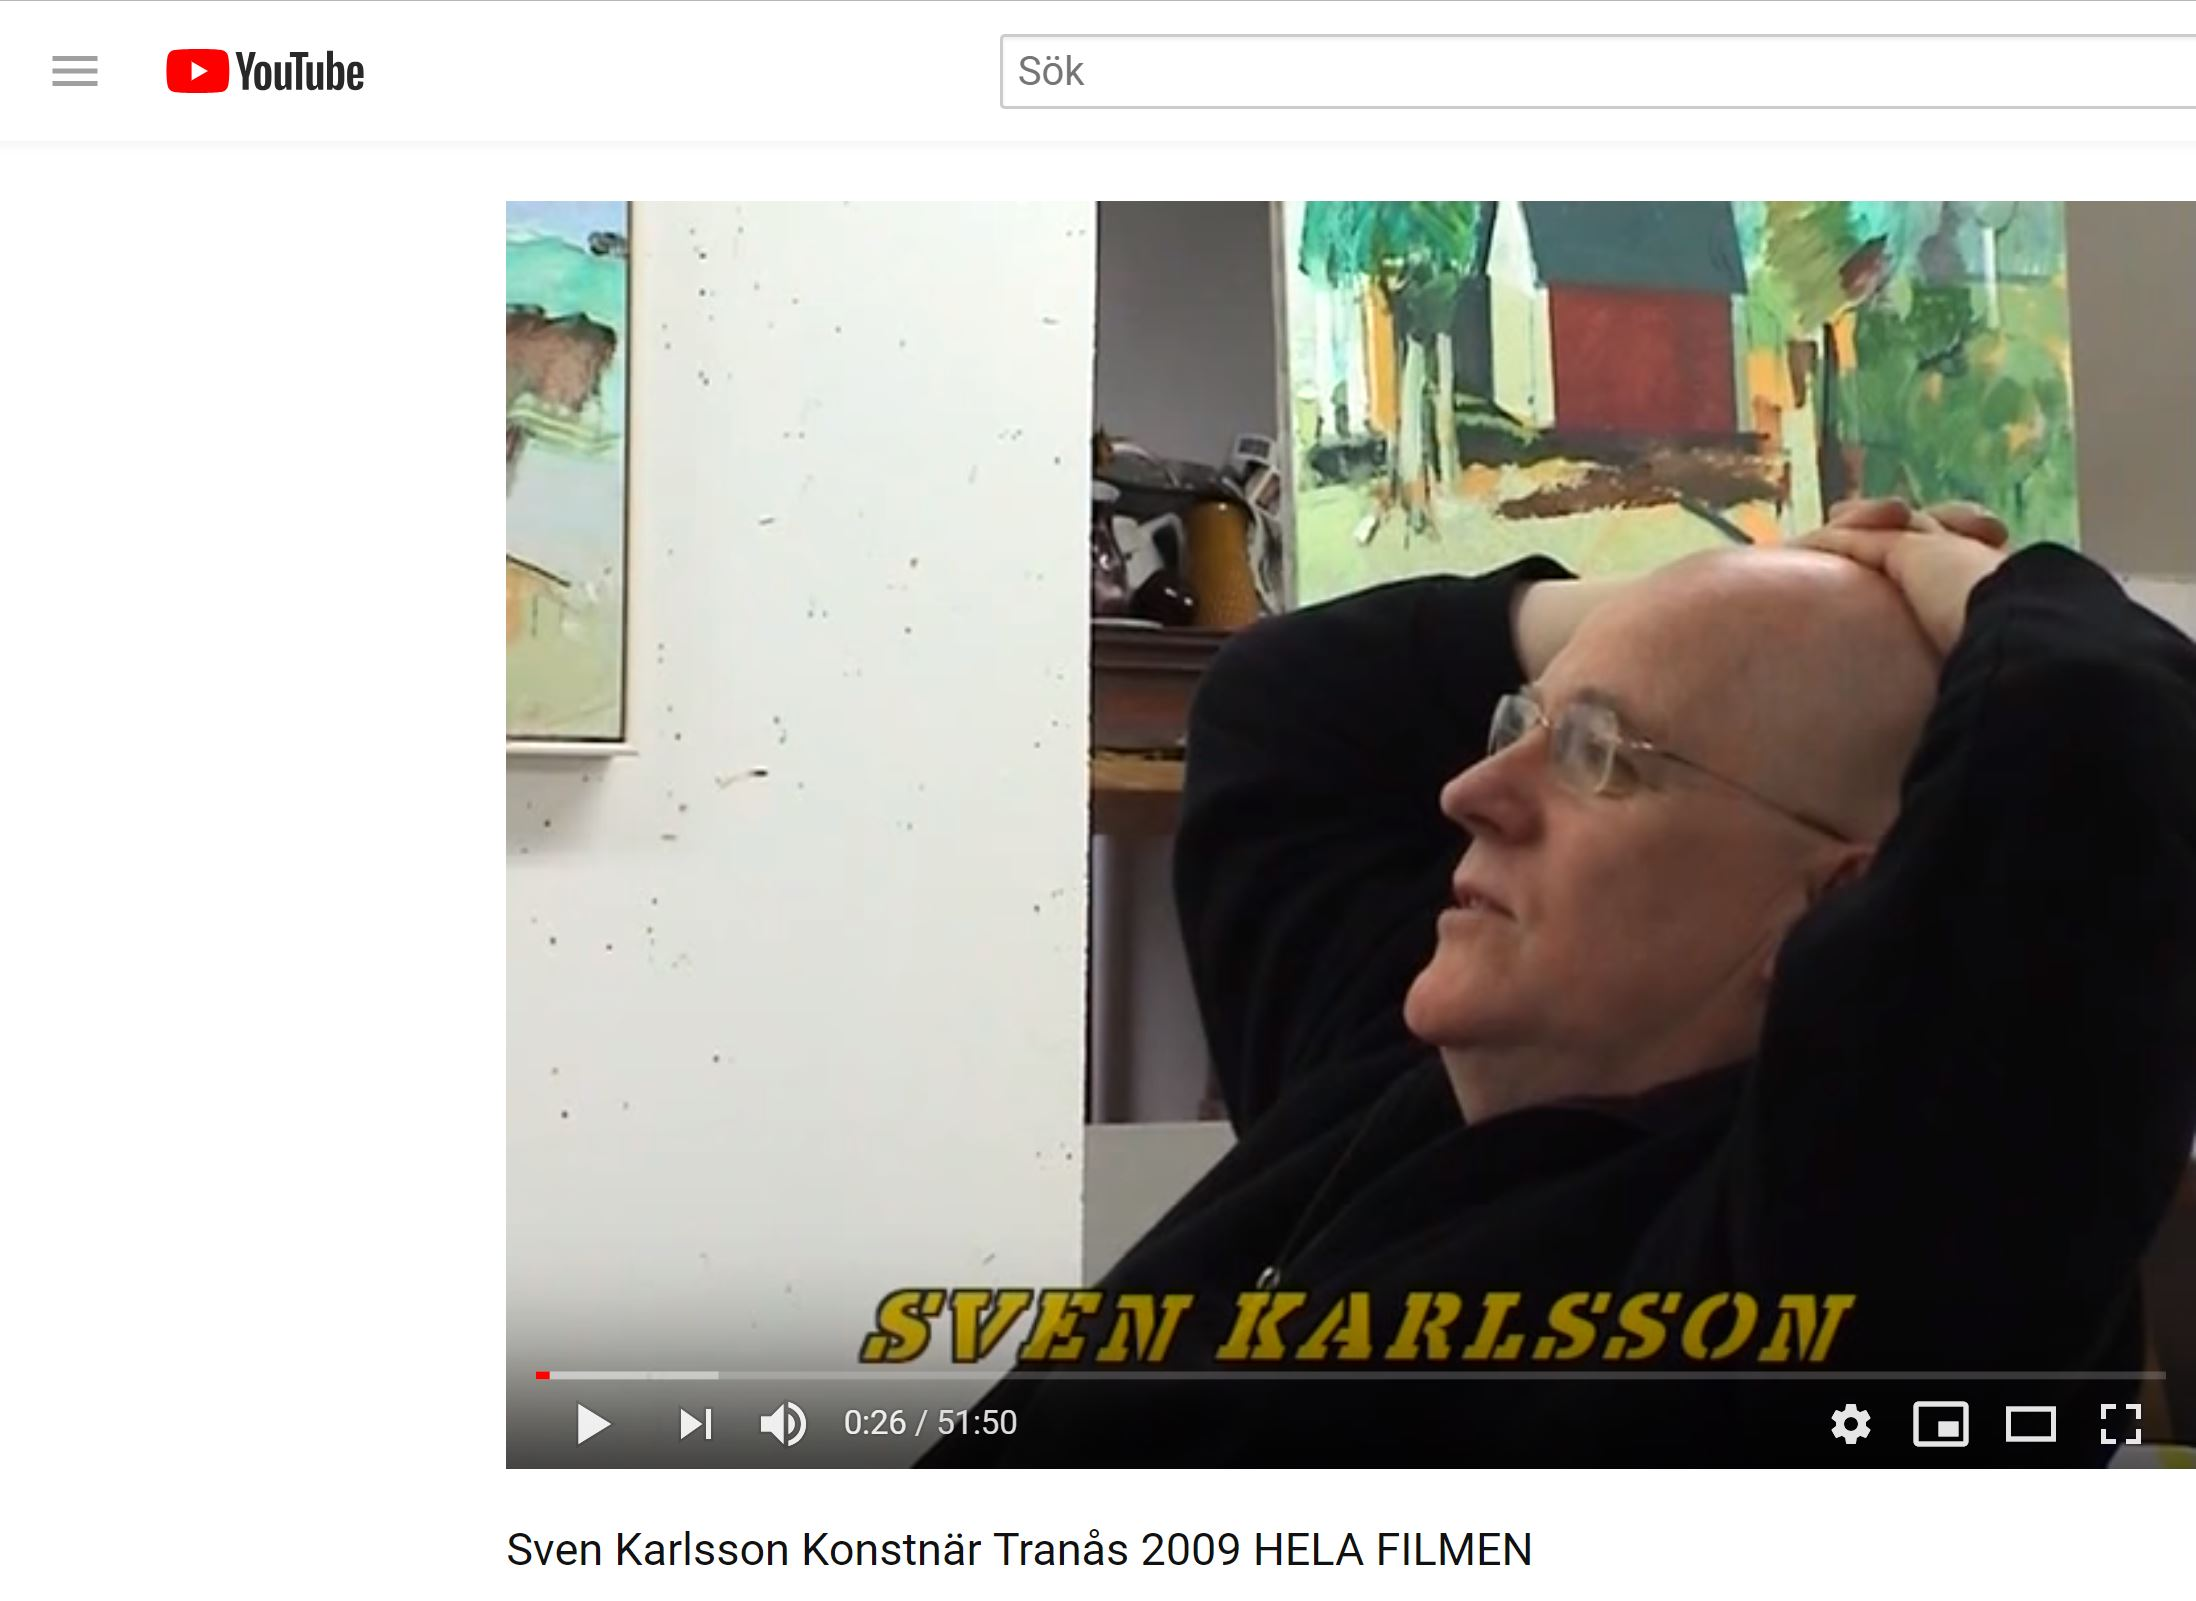 Sven Karlsson - Youtube